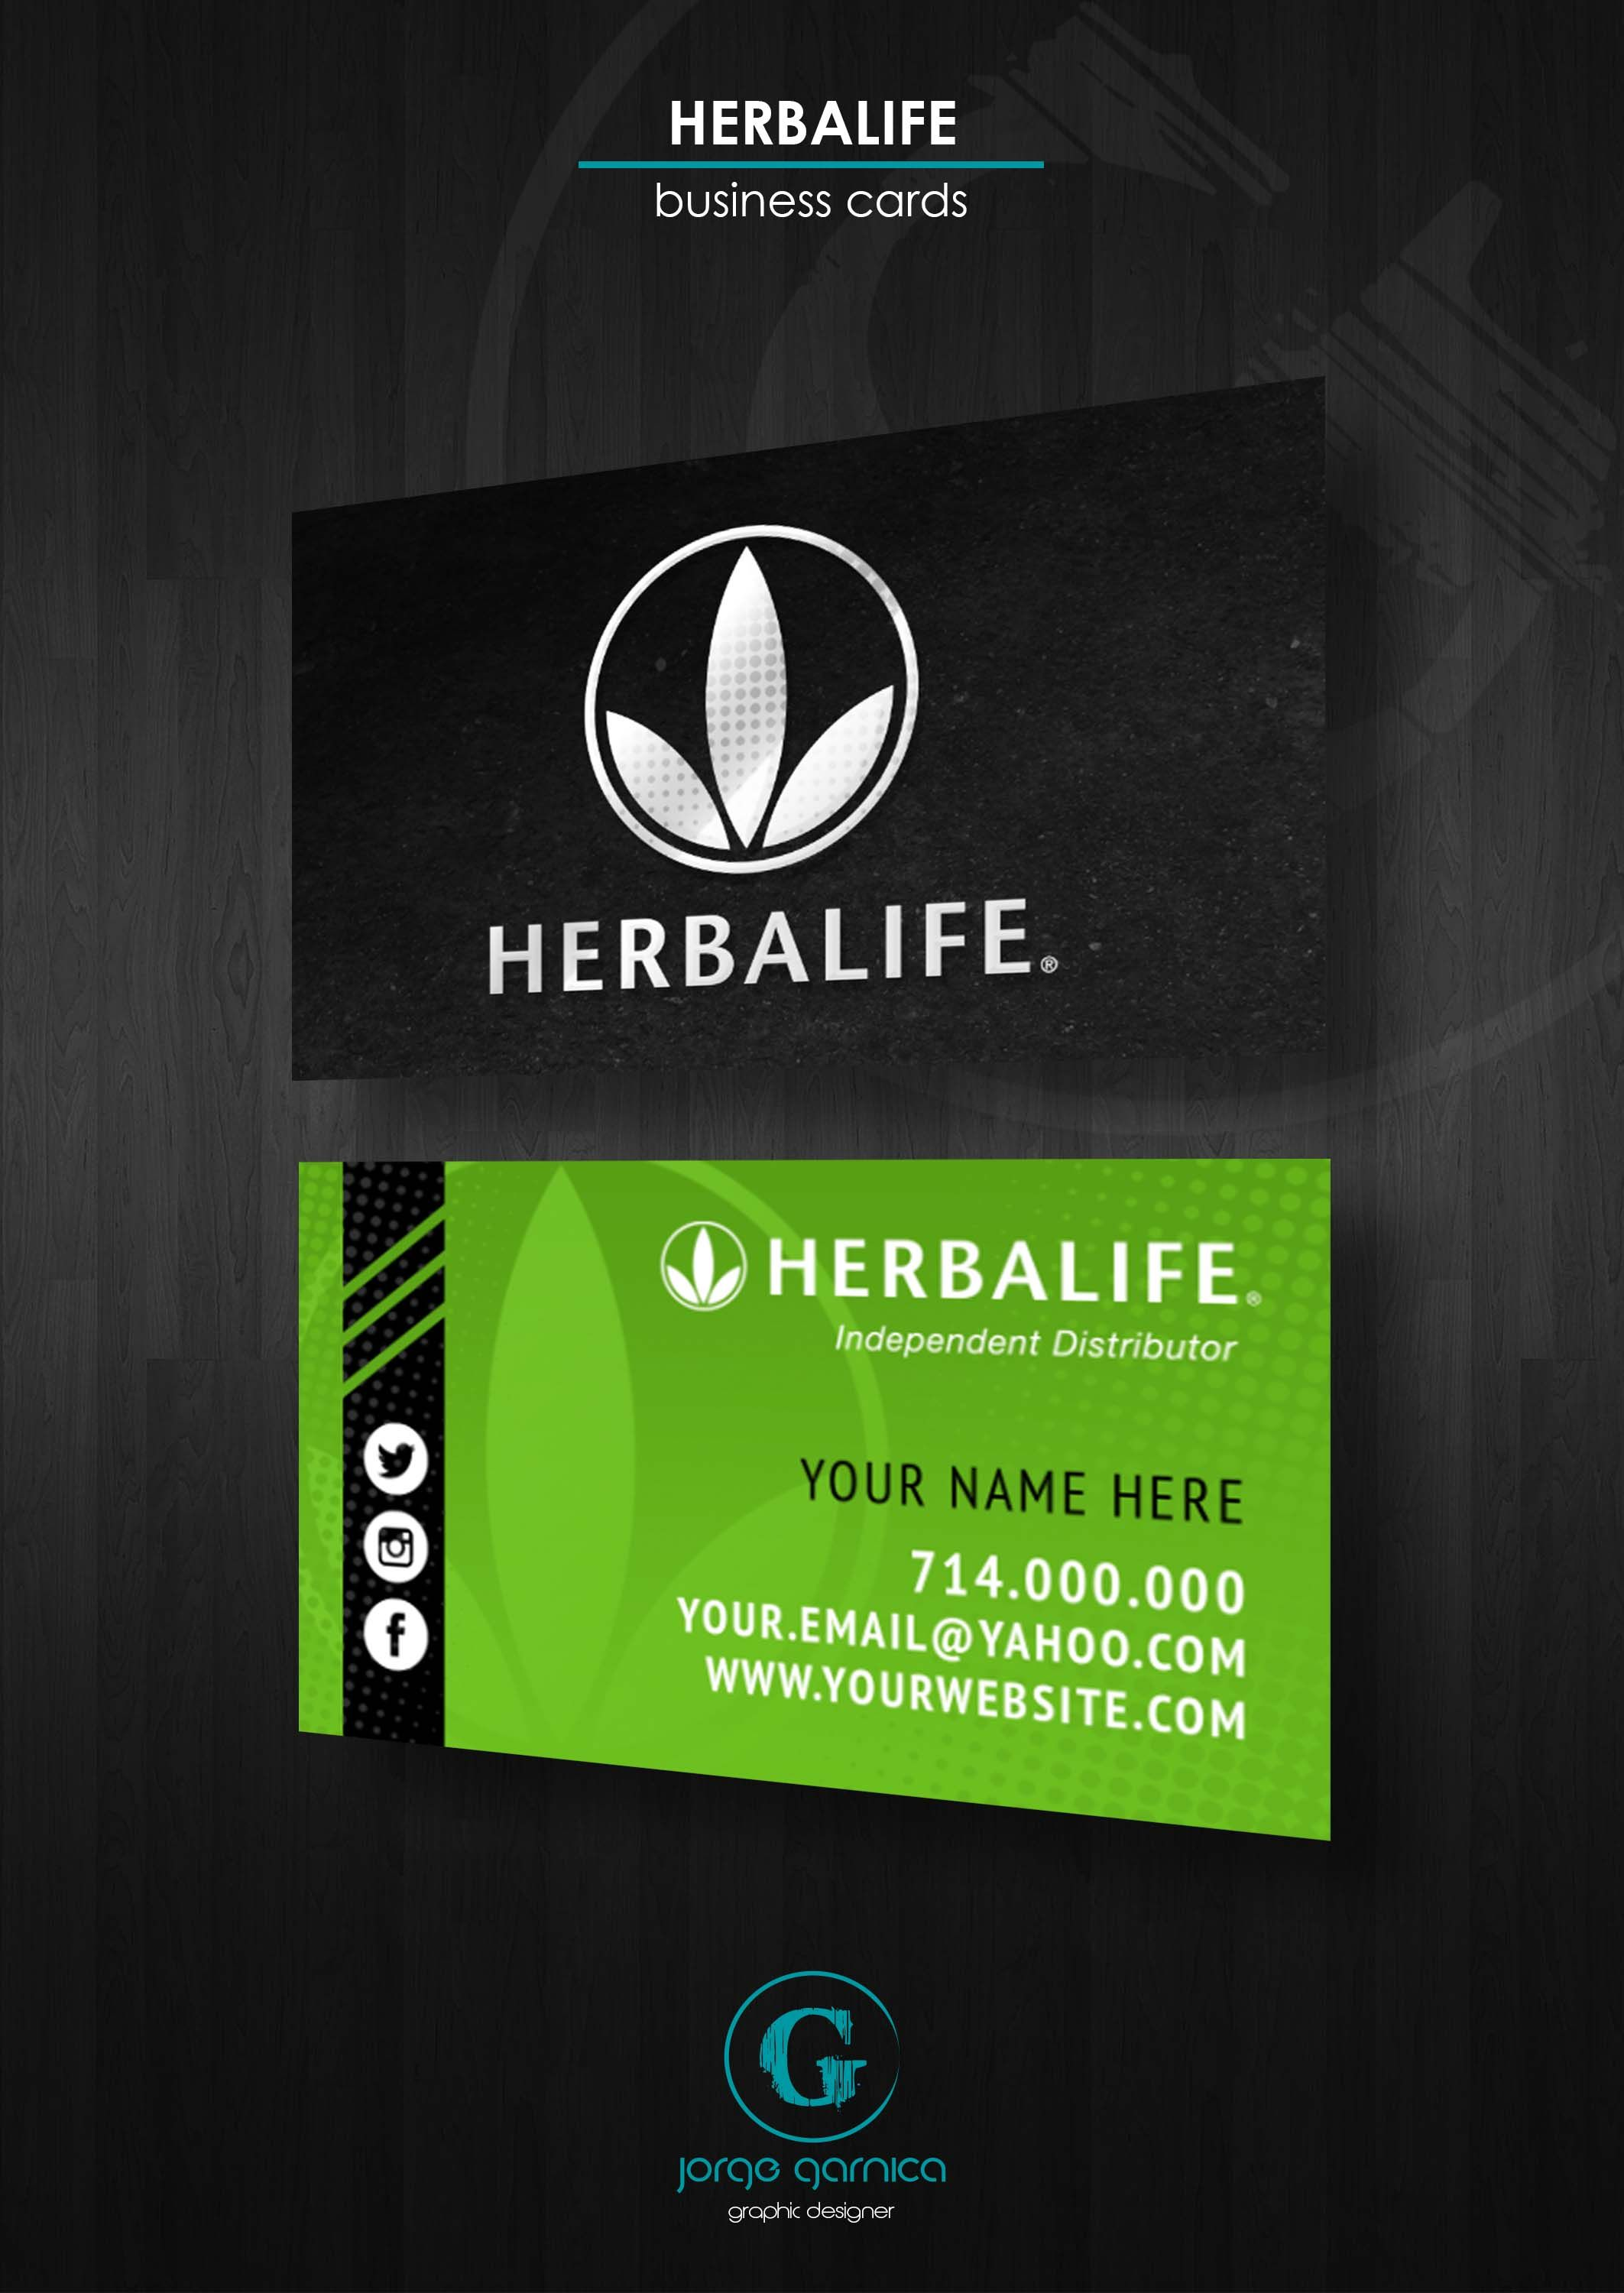 Herbalife business card design template herbalife pinterest herbalife business card design template wajeb Choice Image